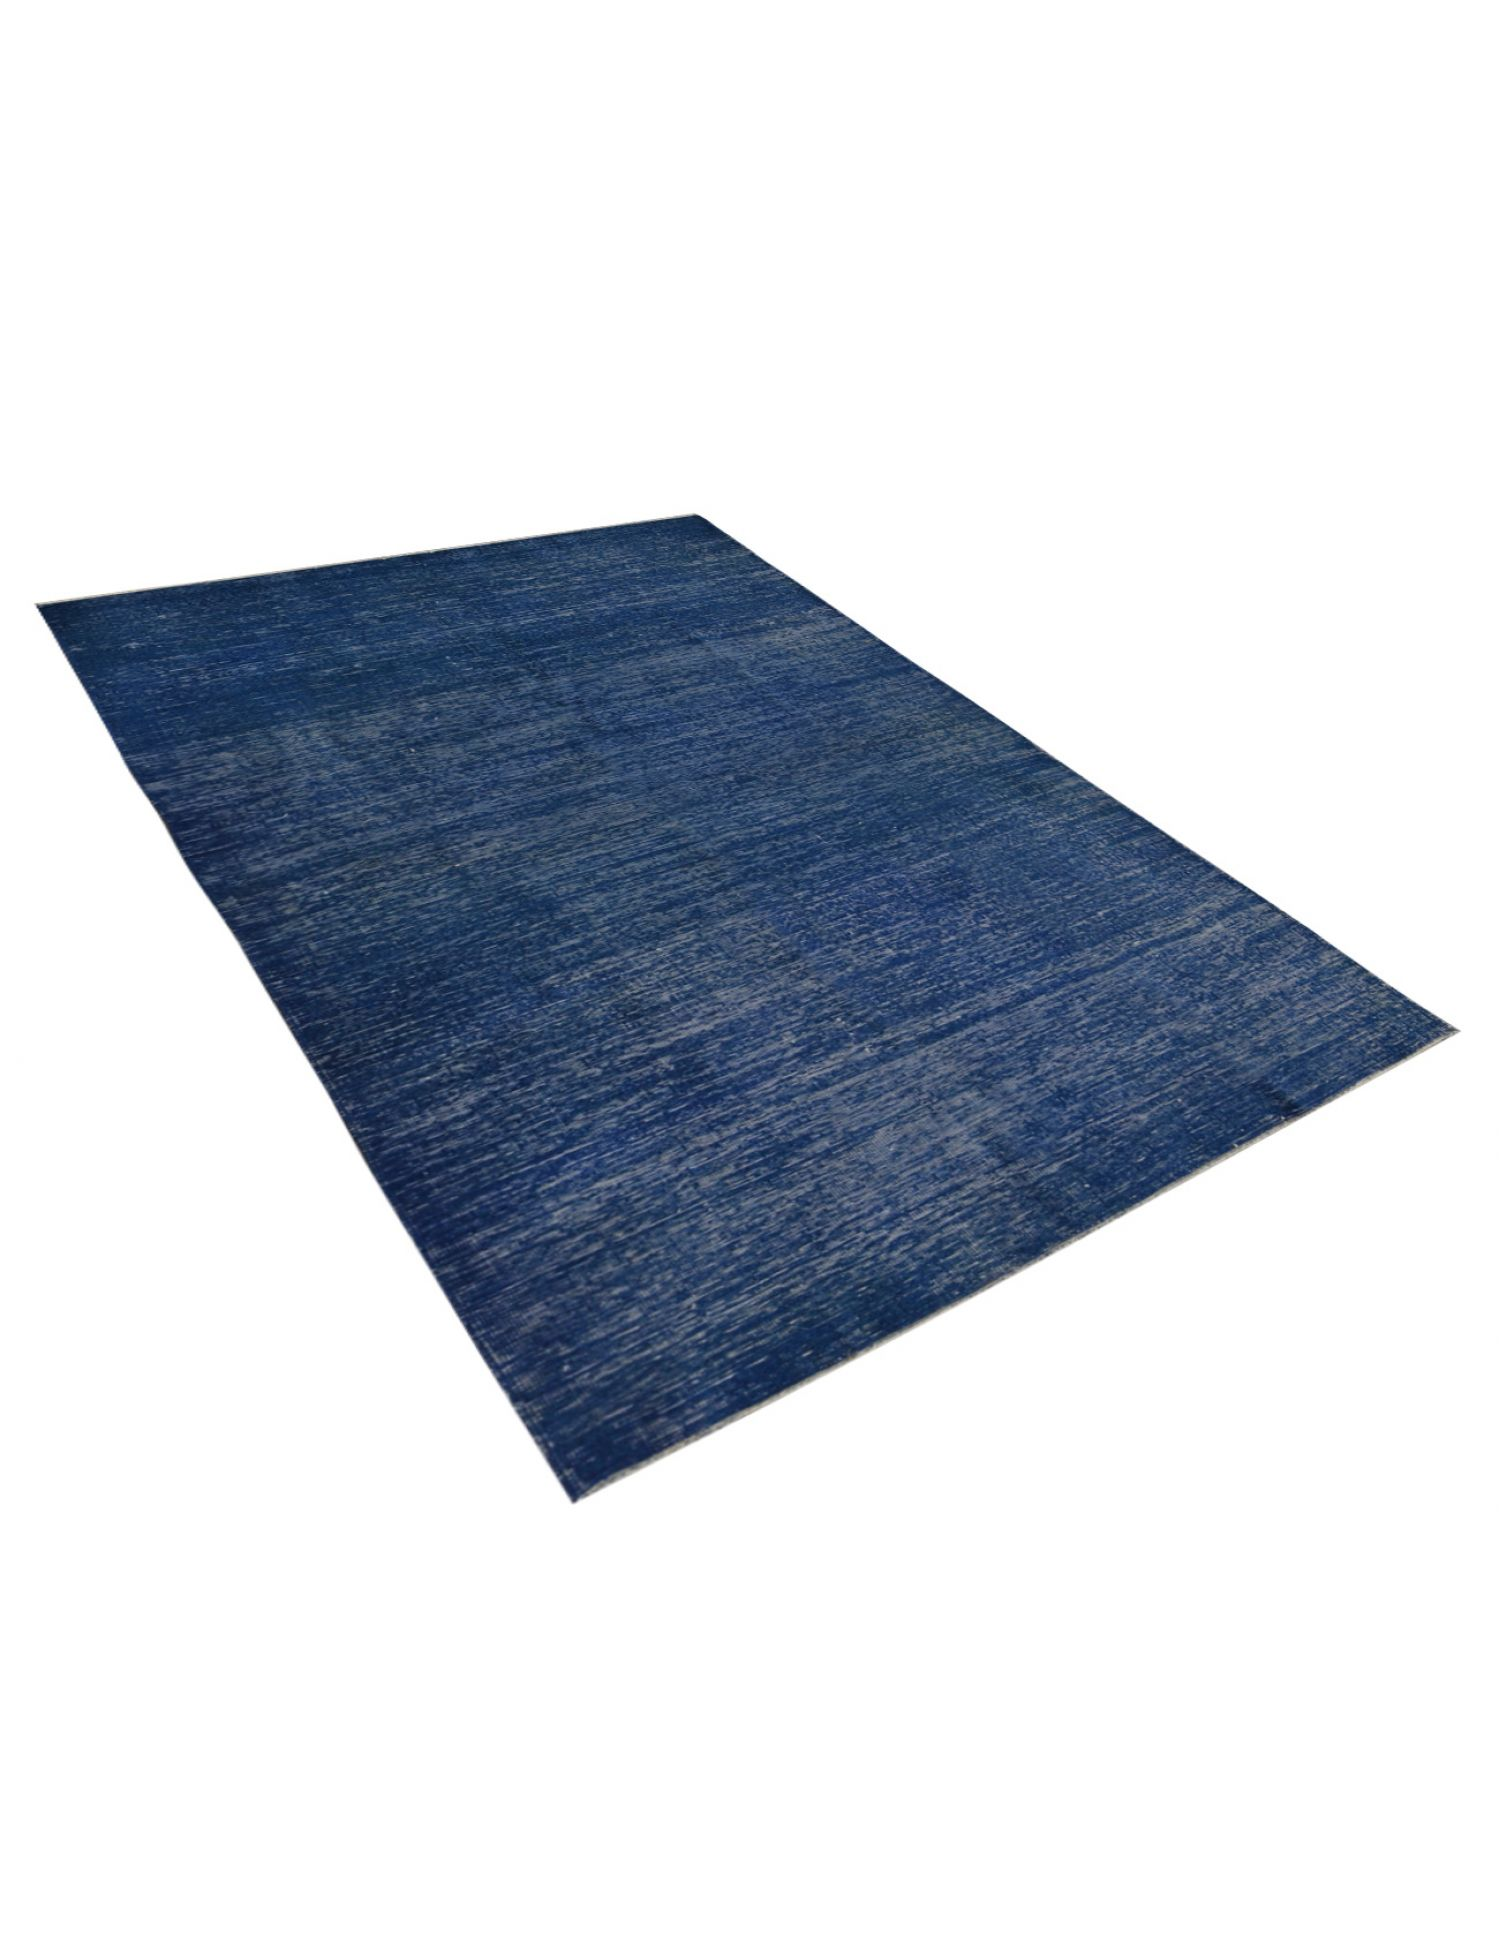 Vintage Carpet  blue <br/>331 x 165 cm